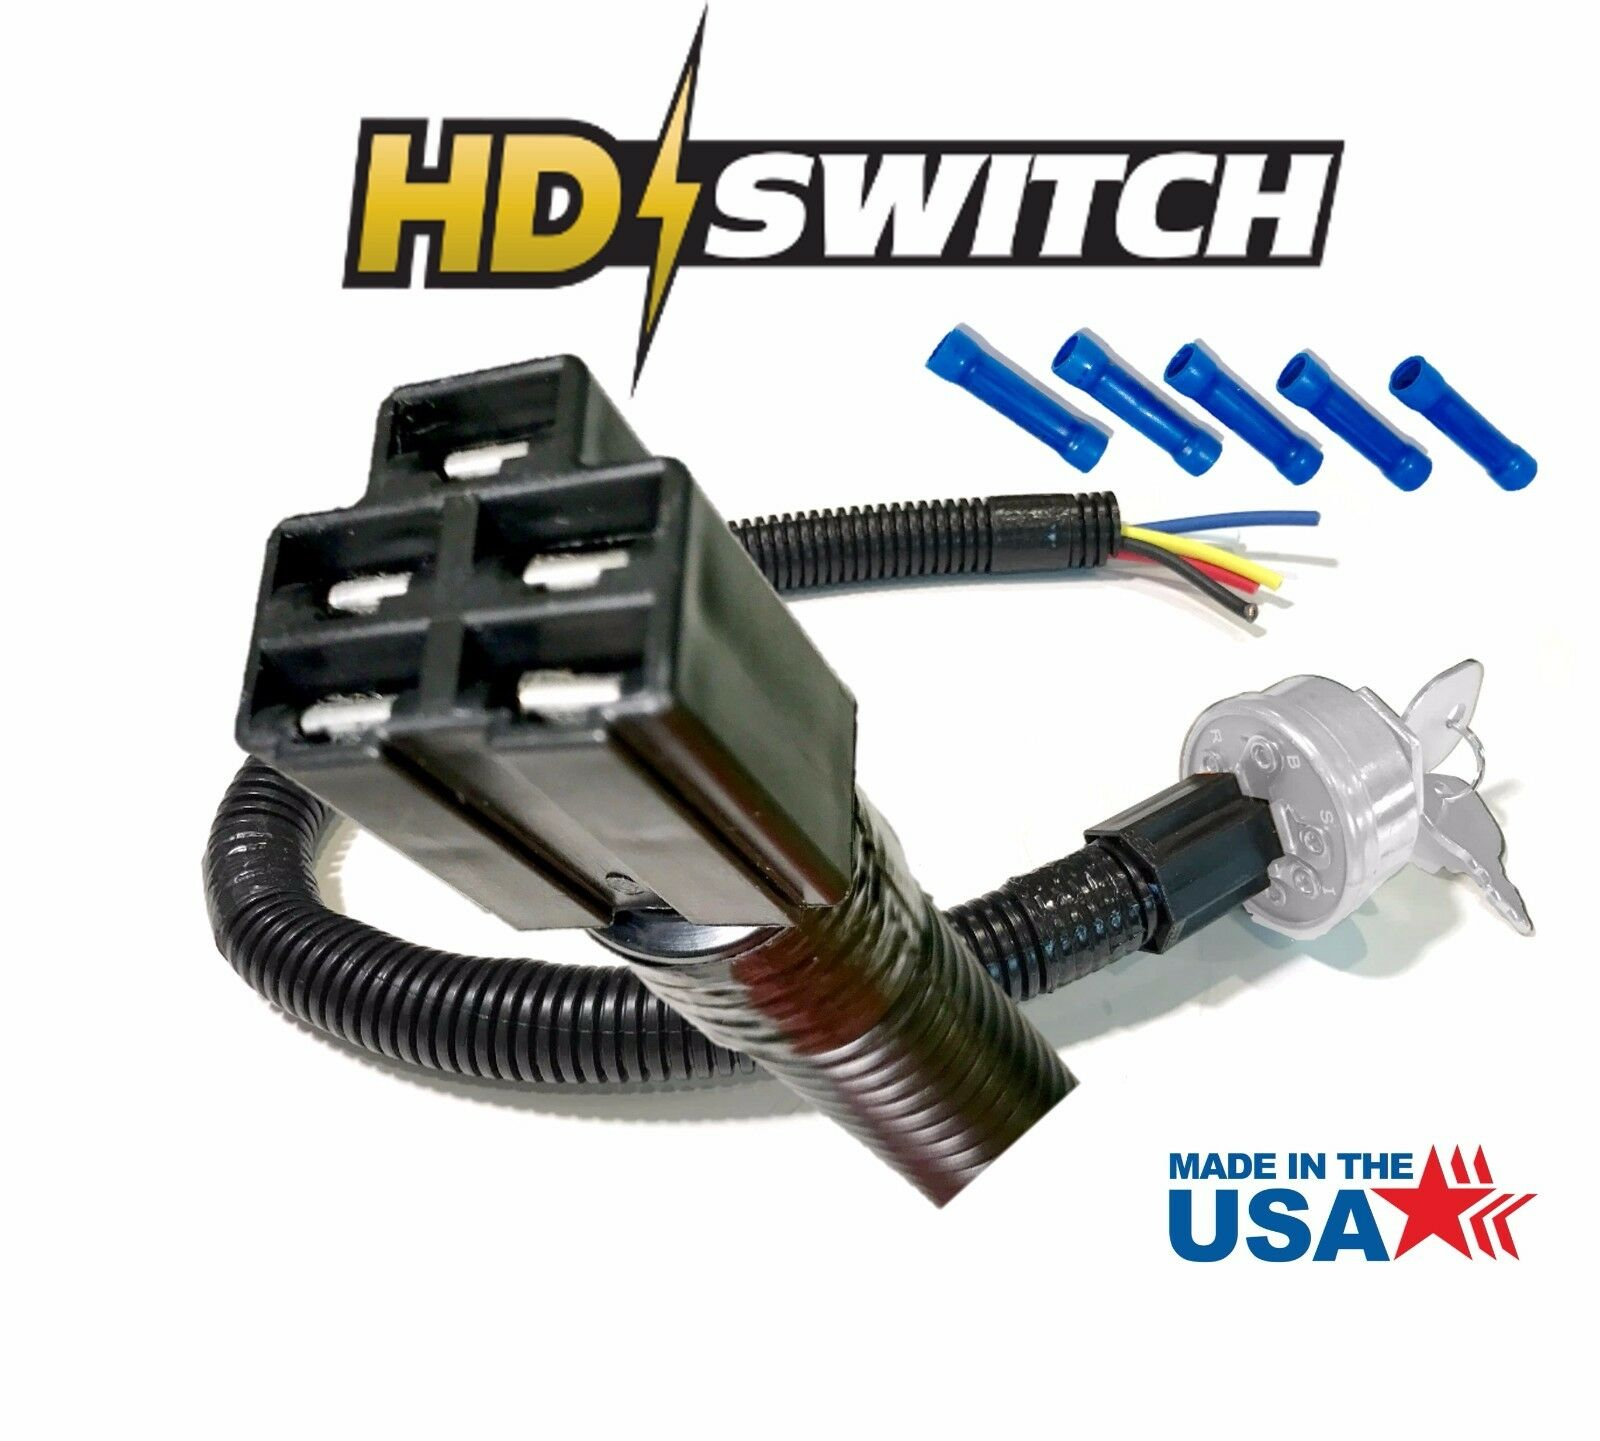 John Deere Sel Wiring Harness Schematic Diagrams Wire Ignition Switch Tca15075 Am101561 Others Peg Perego Gator